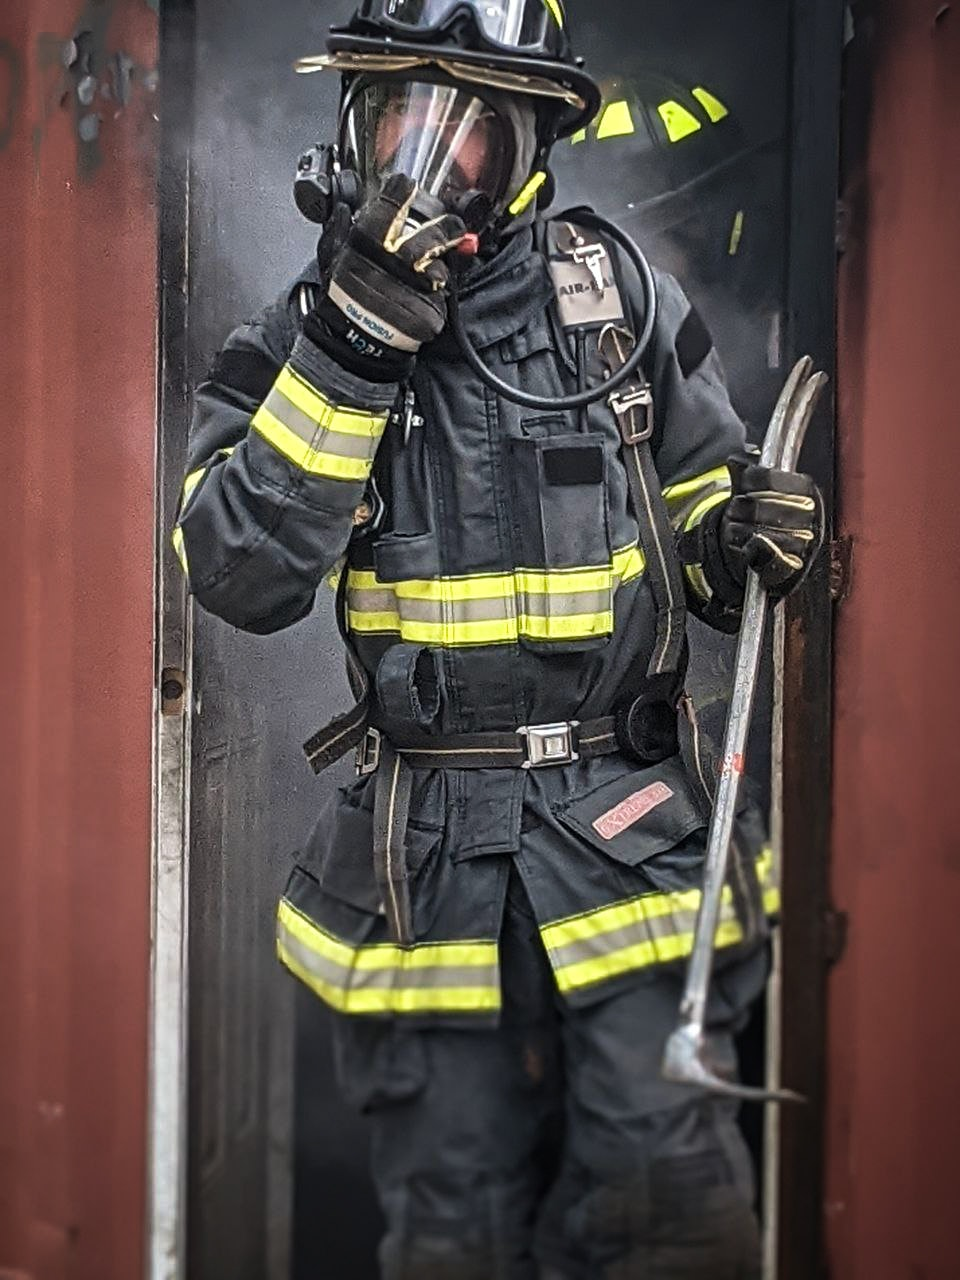 May contain: helmet, clothing, apparel, person, human, and fireman